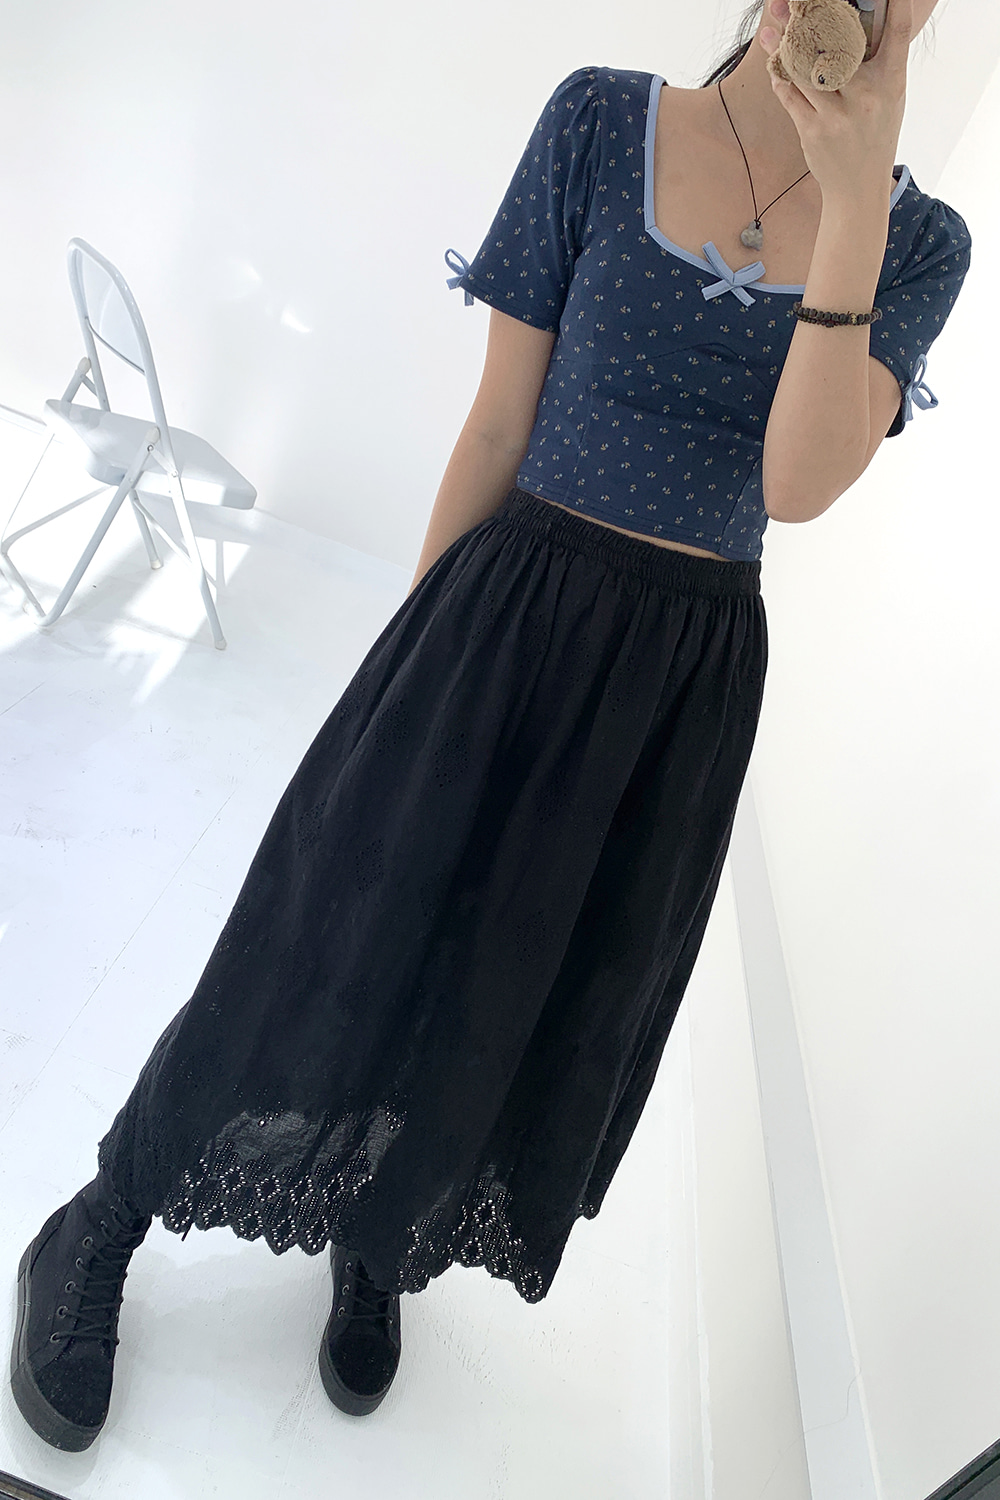 lala punching skirts (black)